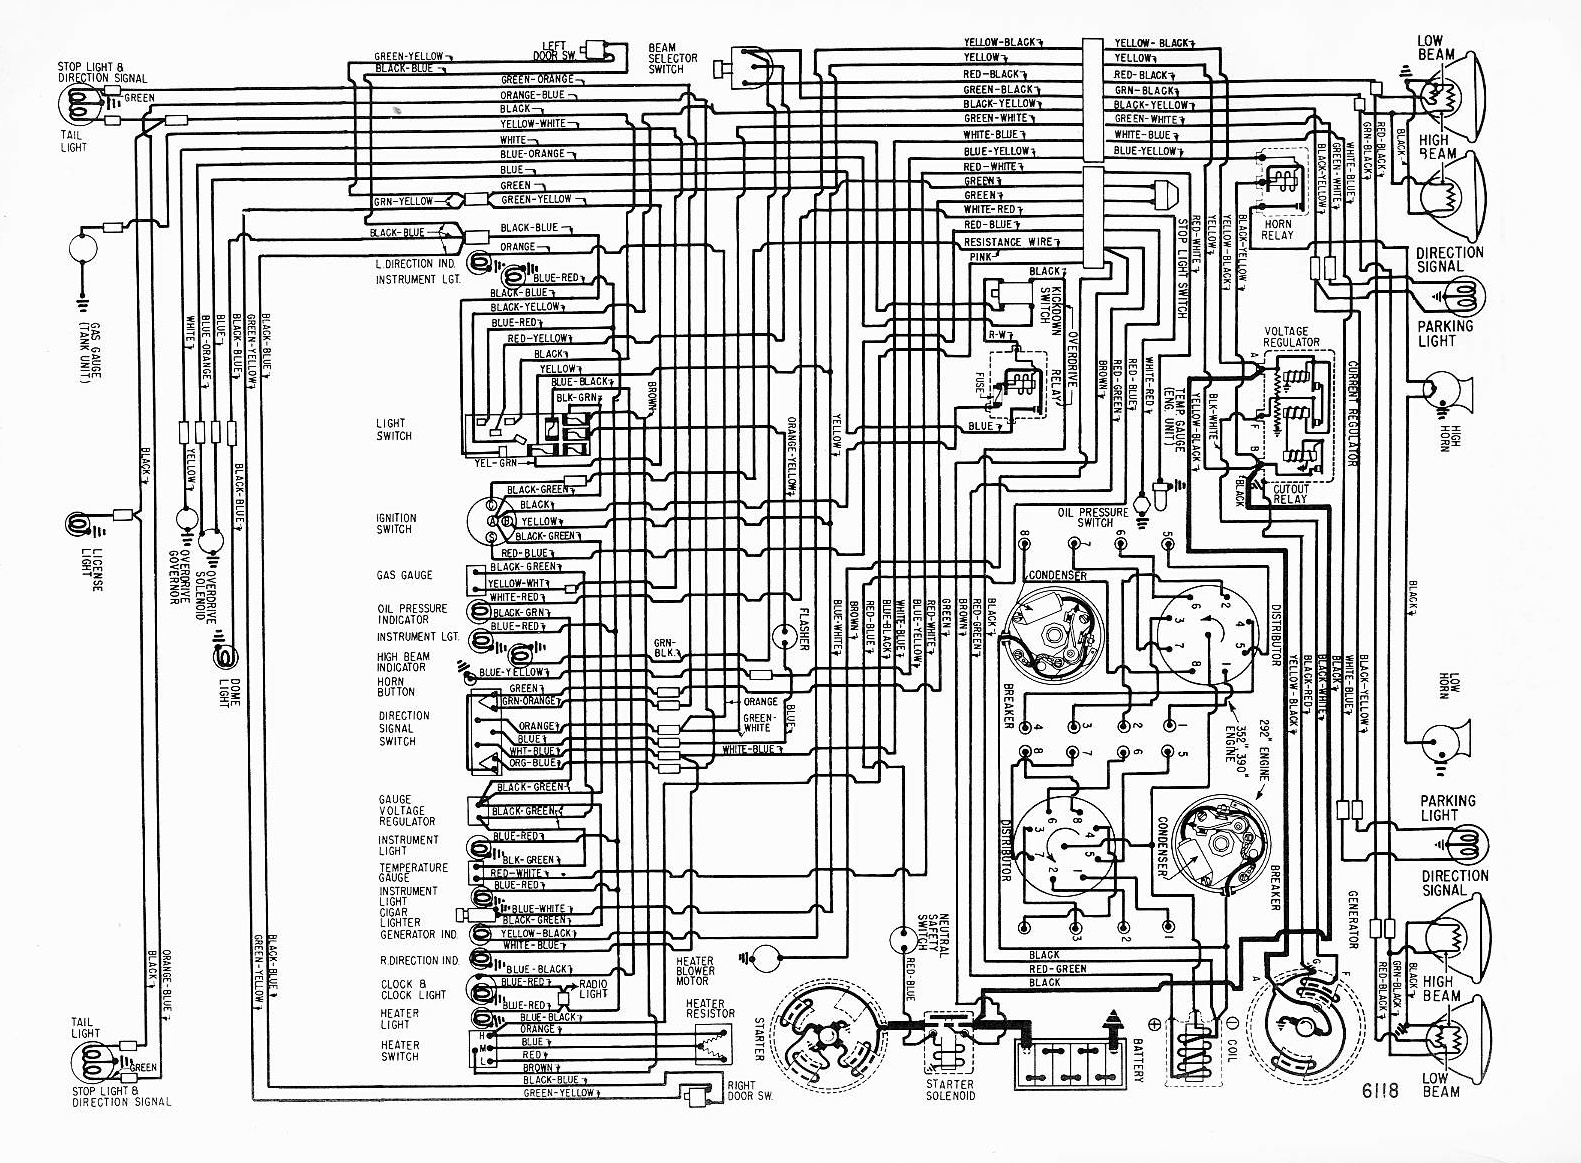 Astonishing 1974 Corvette Wiring Harness Basic Electronics Wiring Diagram Wiring 101 Orsalhahutechinfo